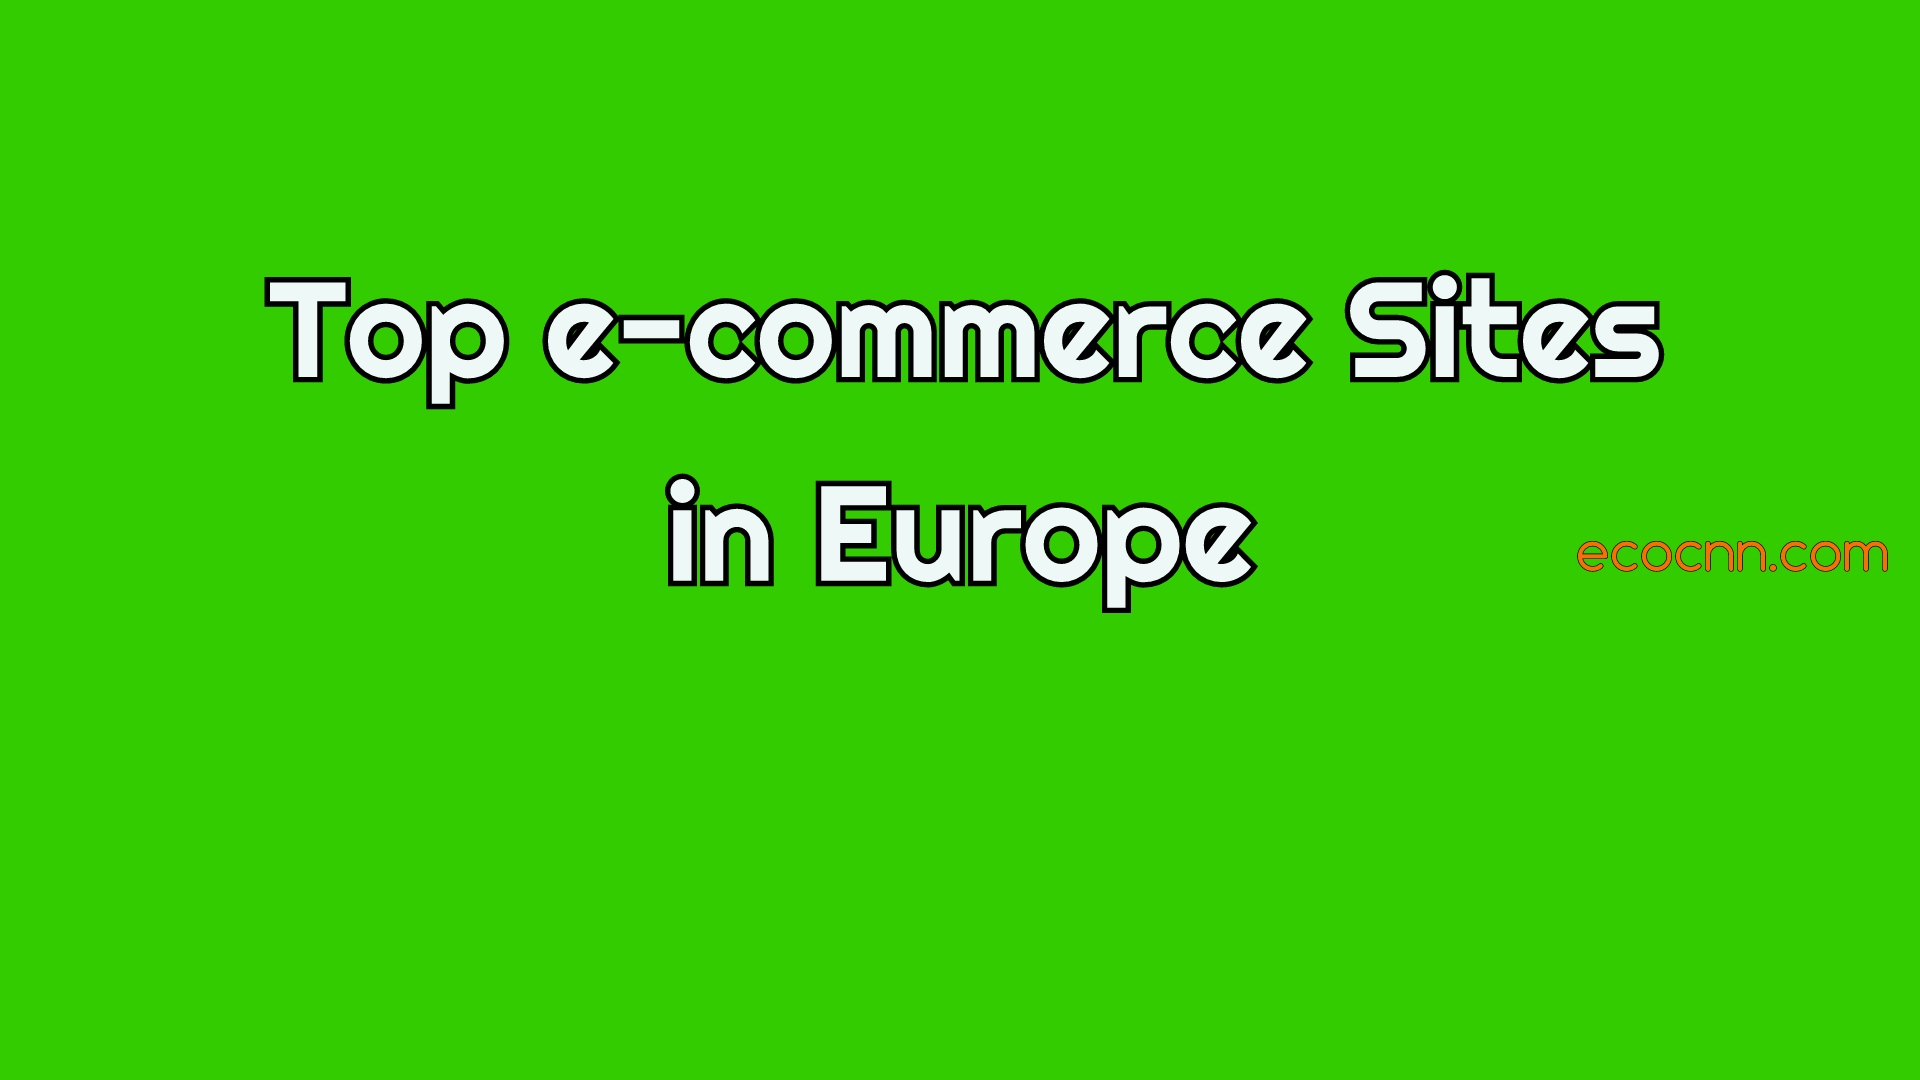 Top Ecommerce websites in Europe 2020 Largest Companies